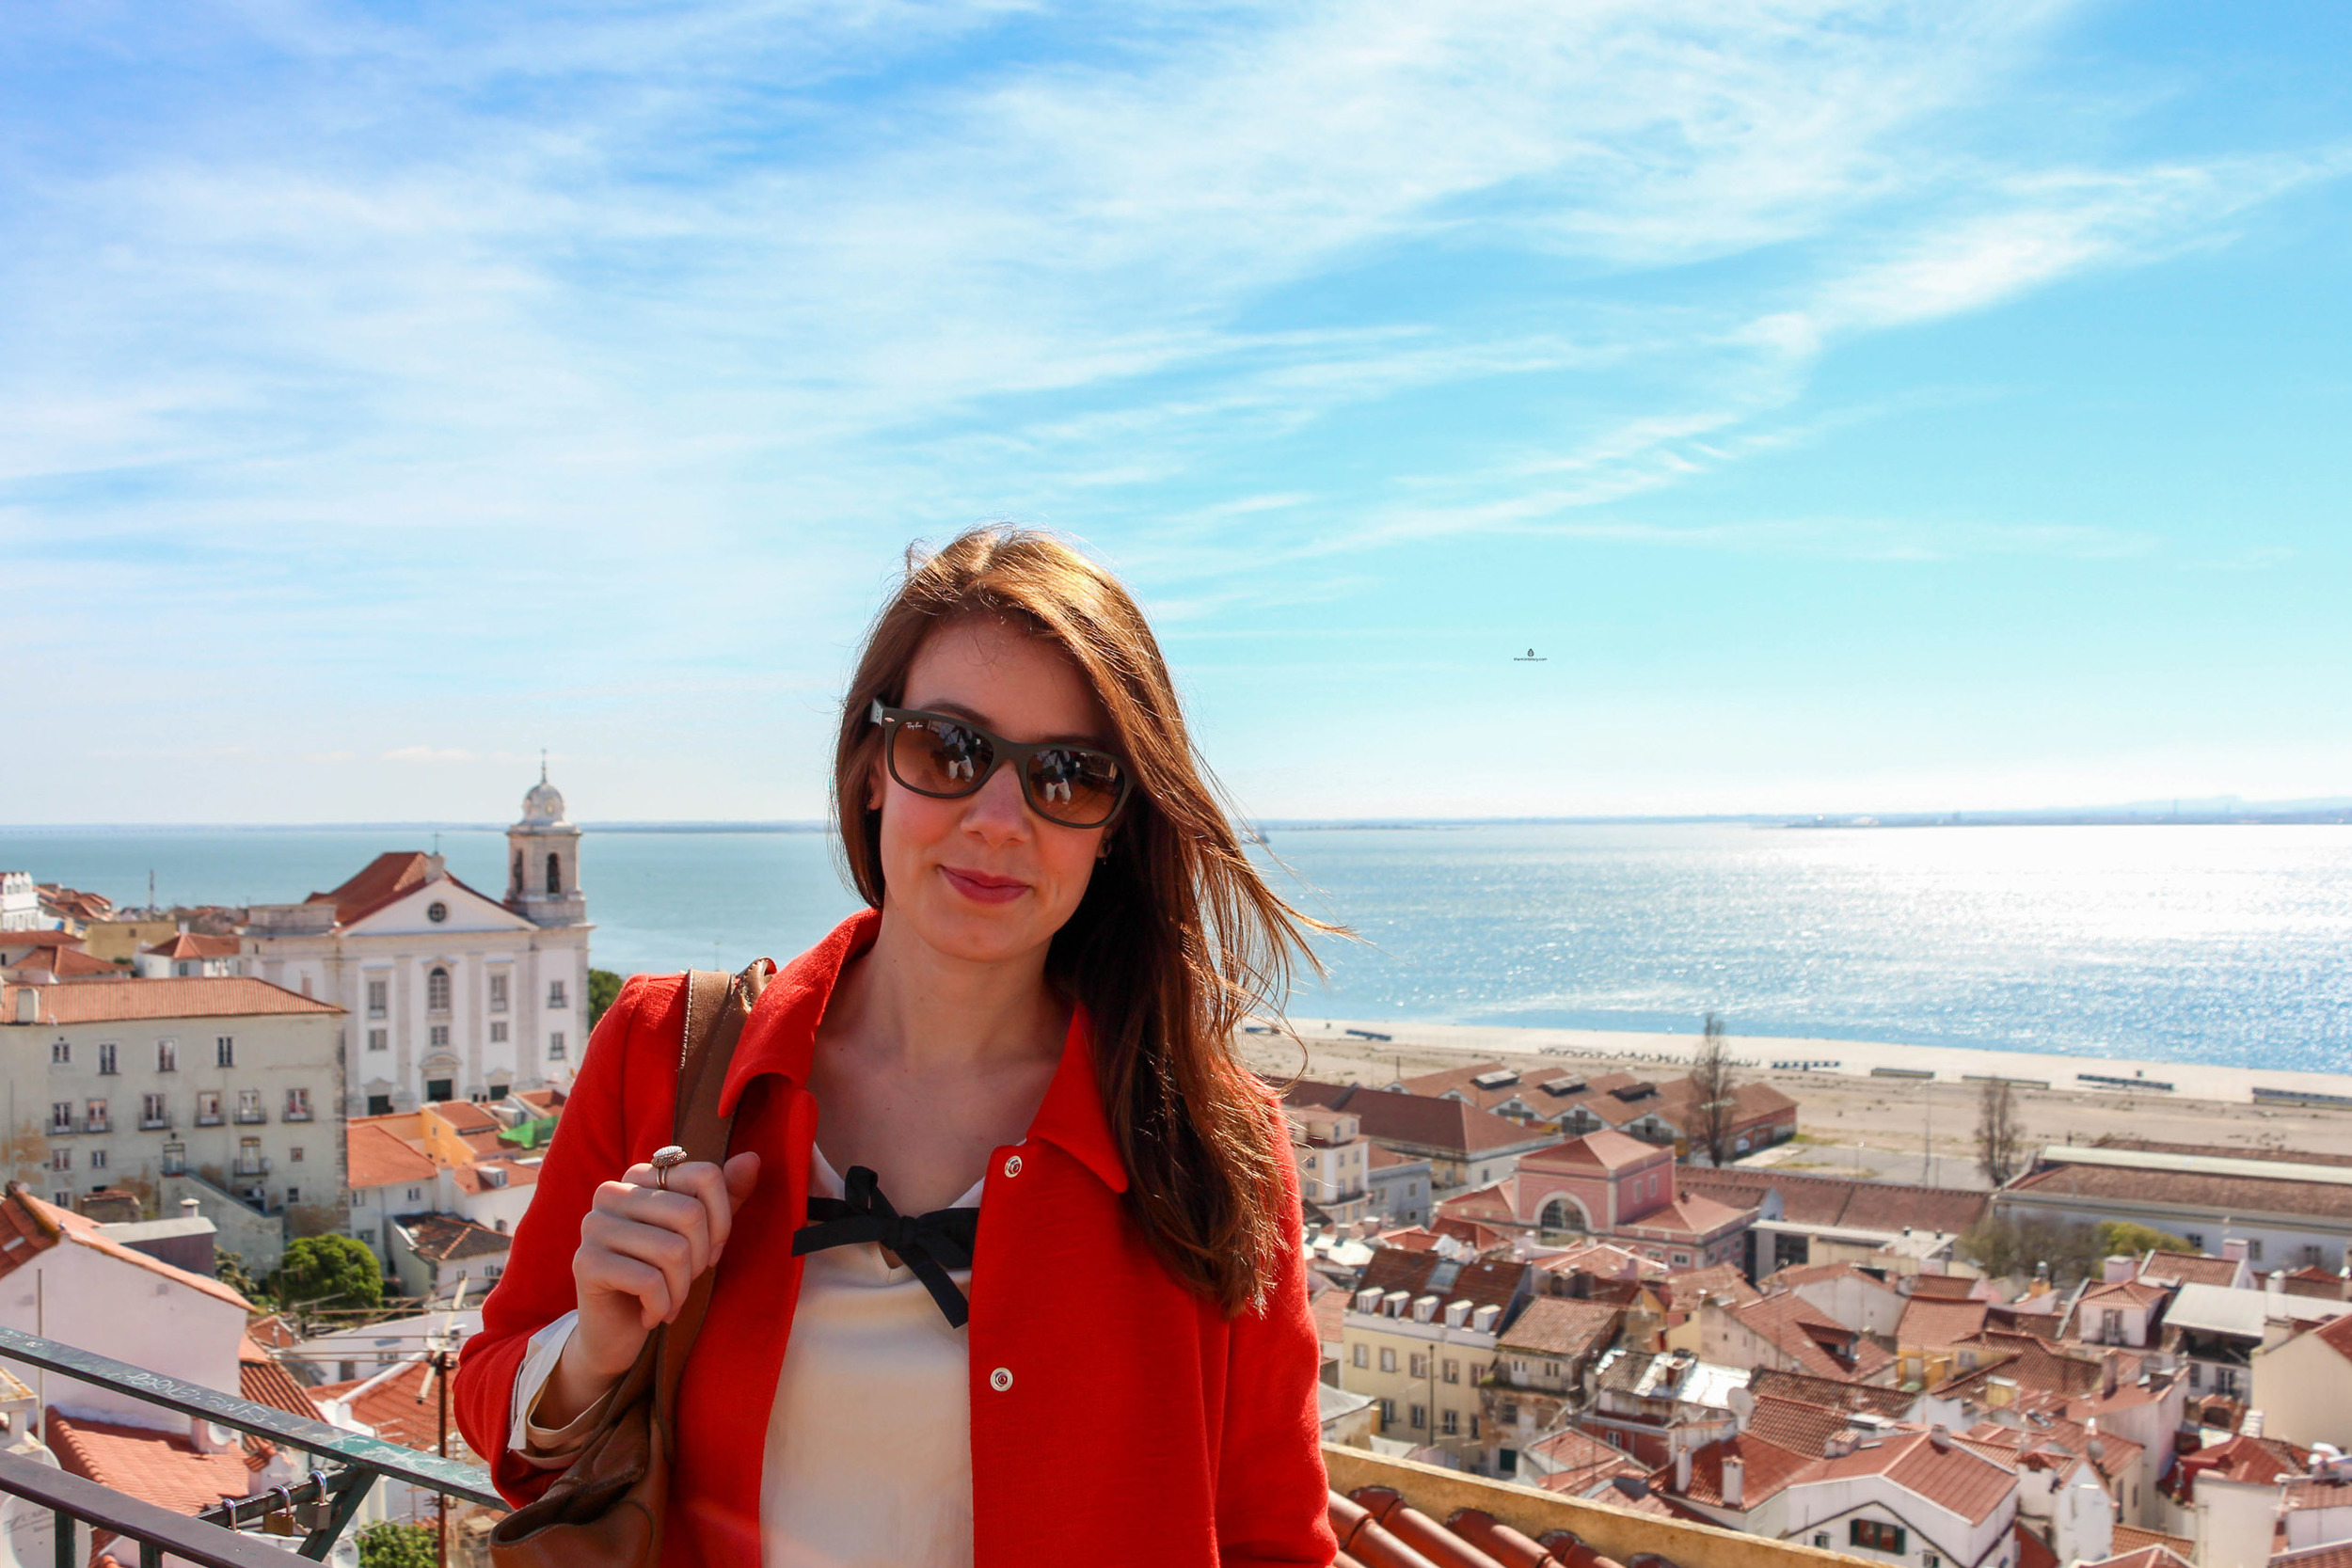 Soaking up the sun and the views of Alfama